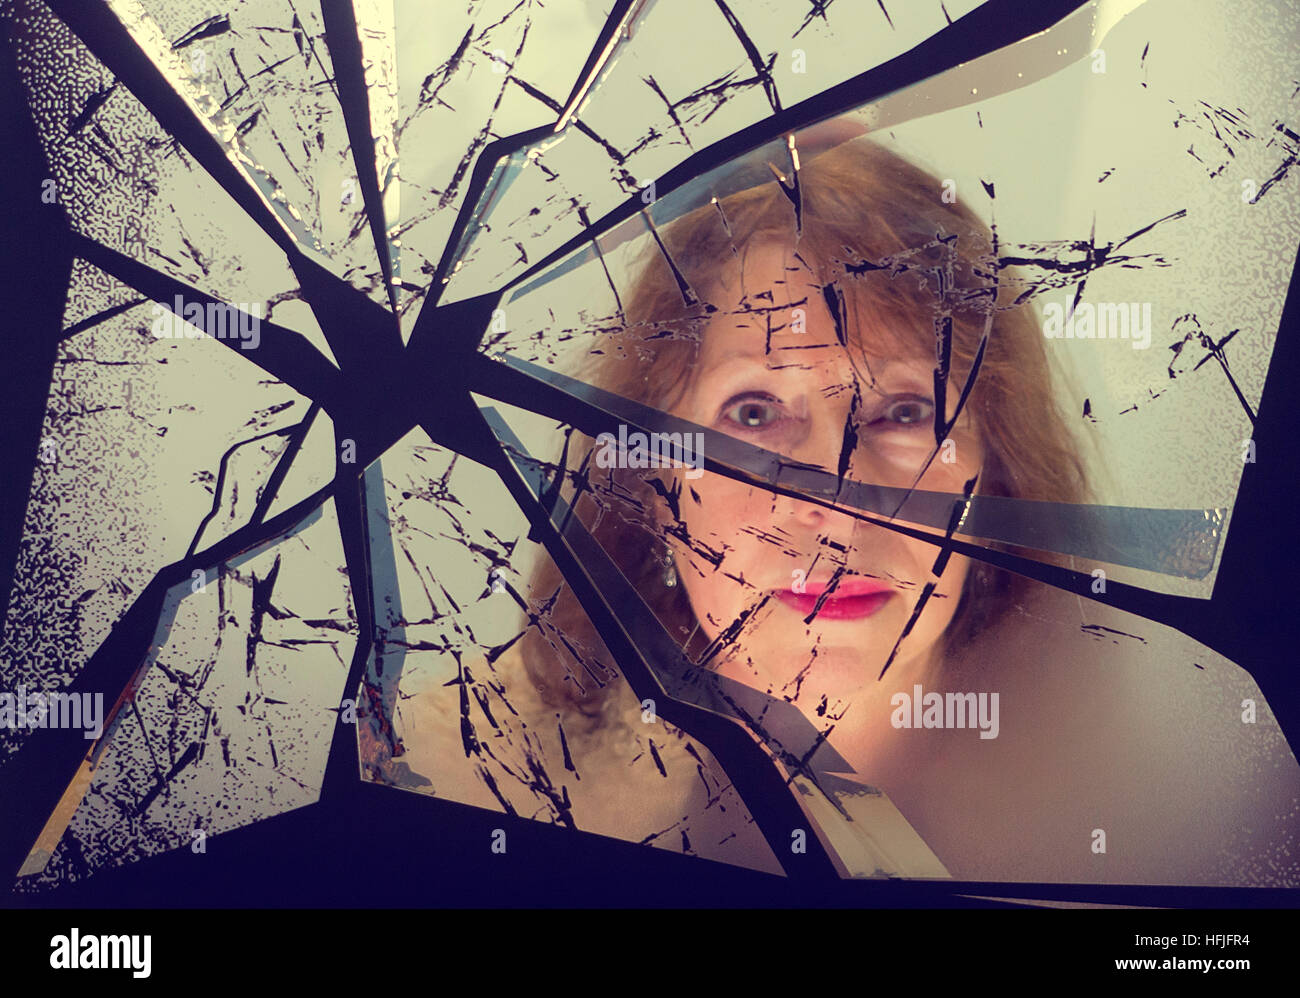 broken mirror reflection photography. reflection of a woman in broken mirror stock image photography